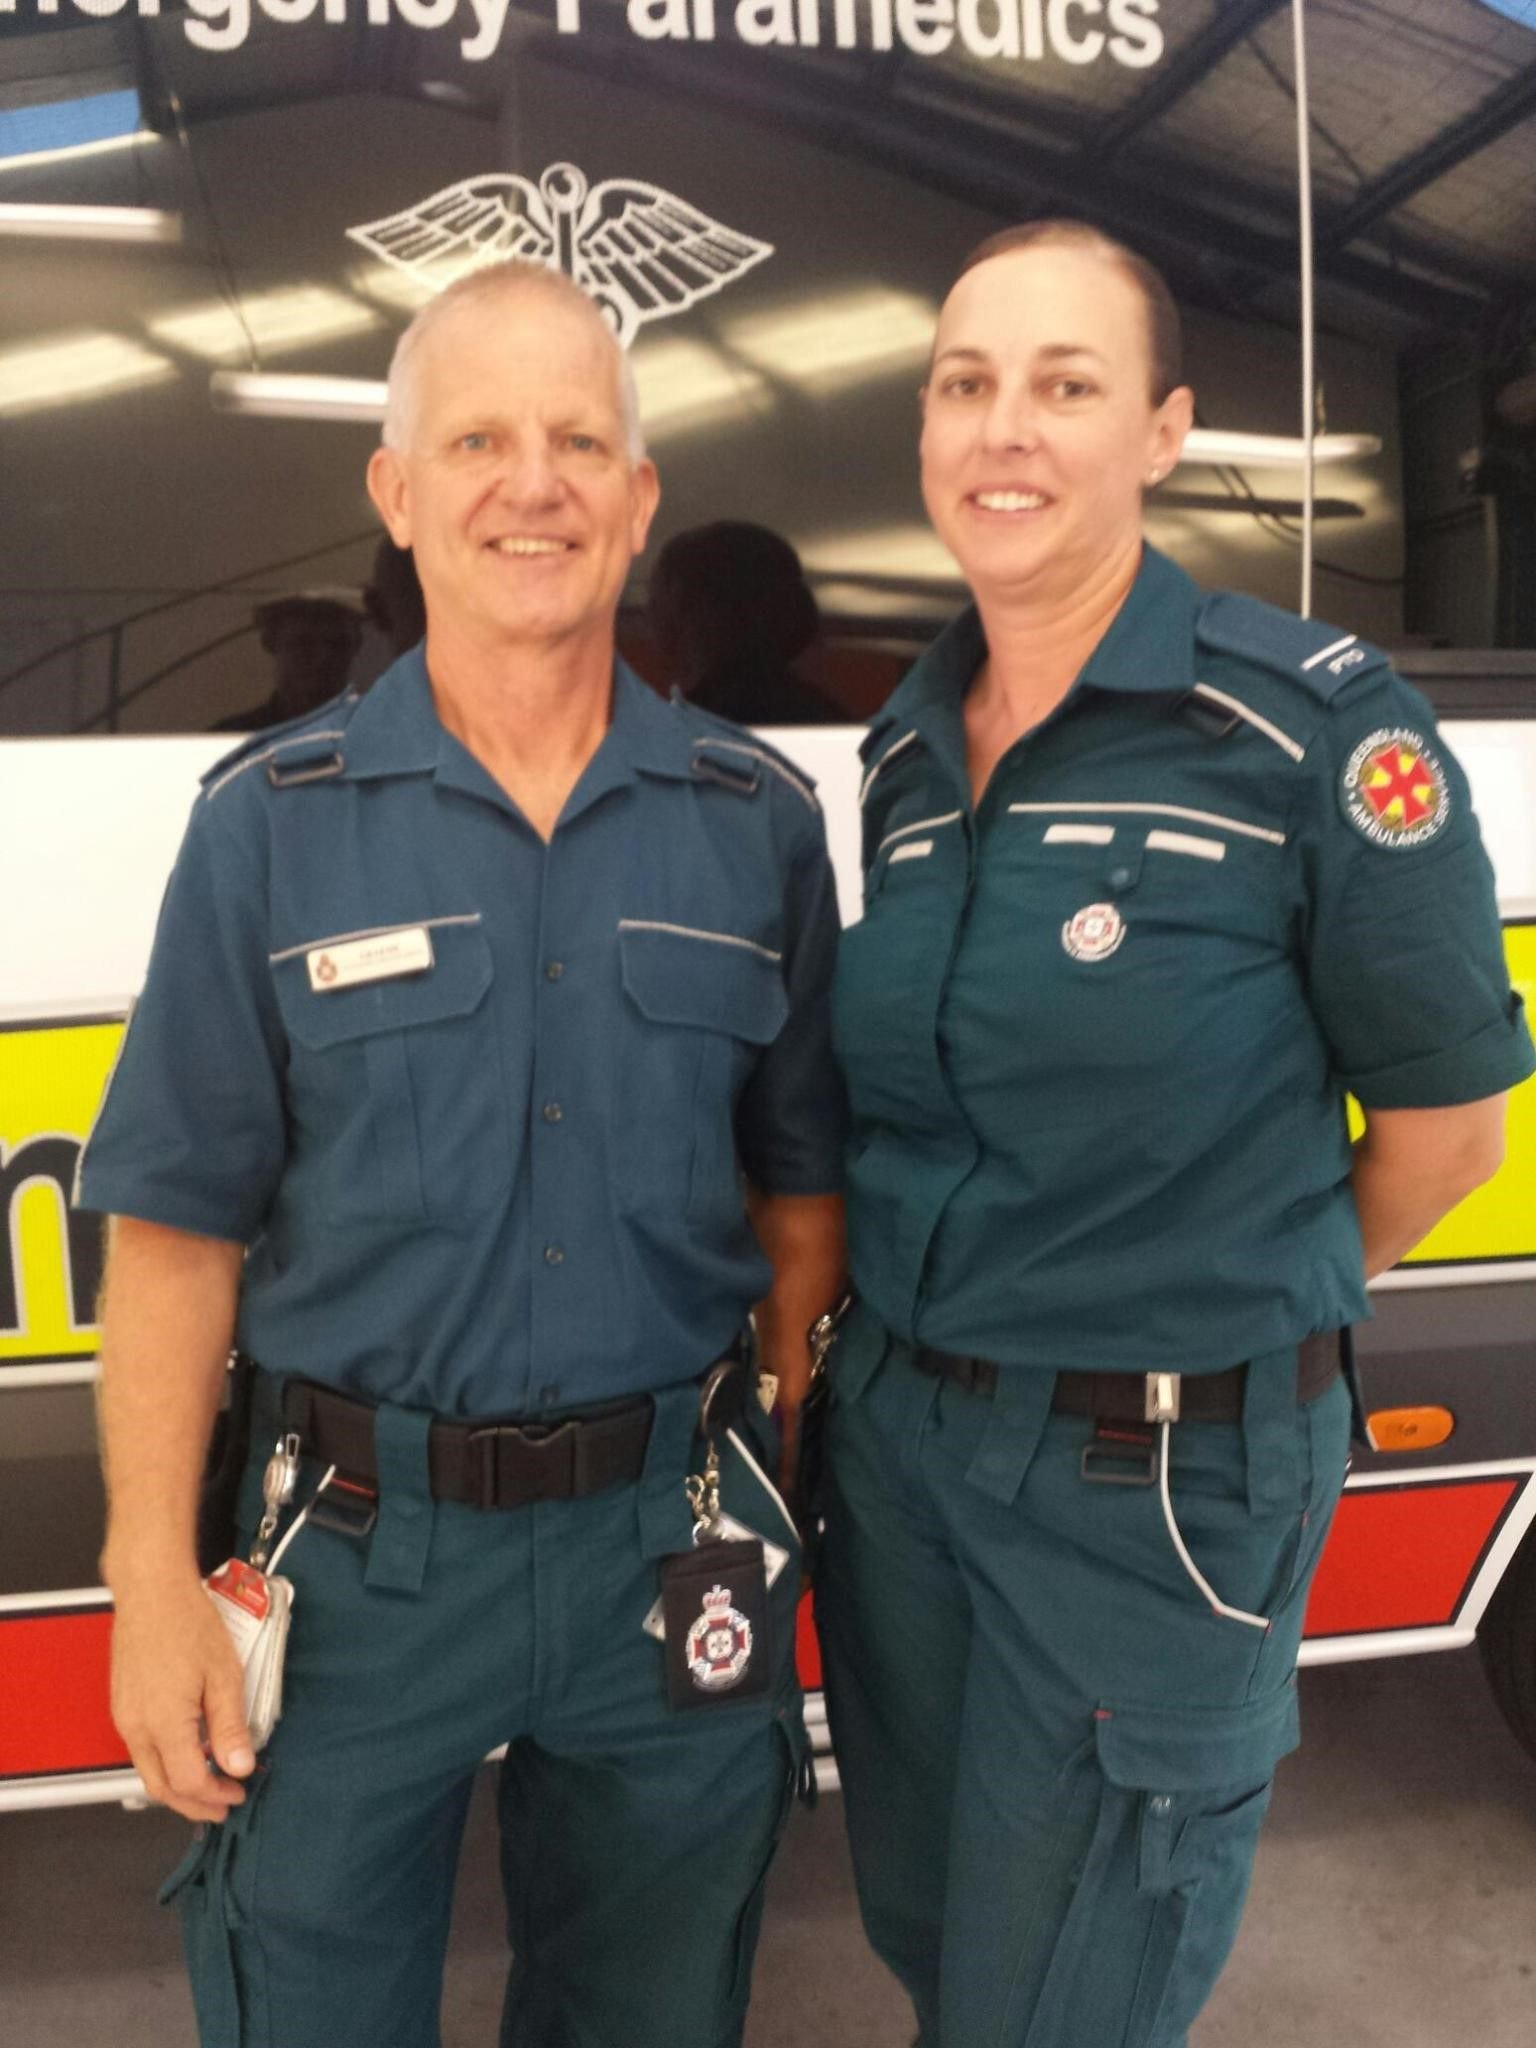 636470653869297939 queensland 1 - Paramedic Takes Dying Woman to See Beach on Stretcher One Last Time